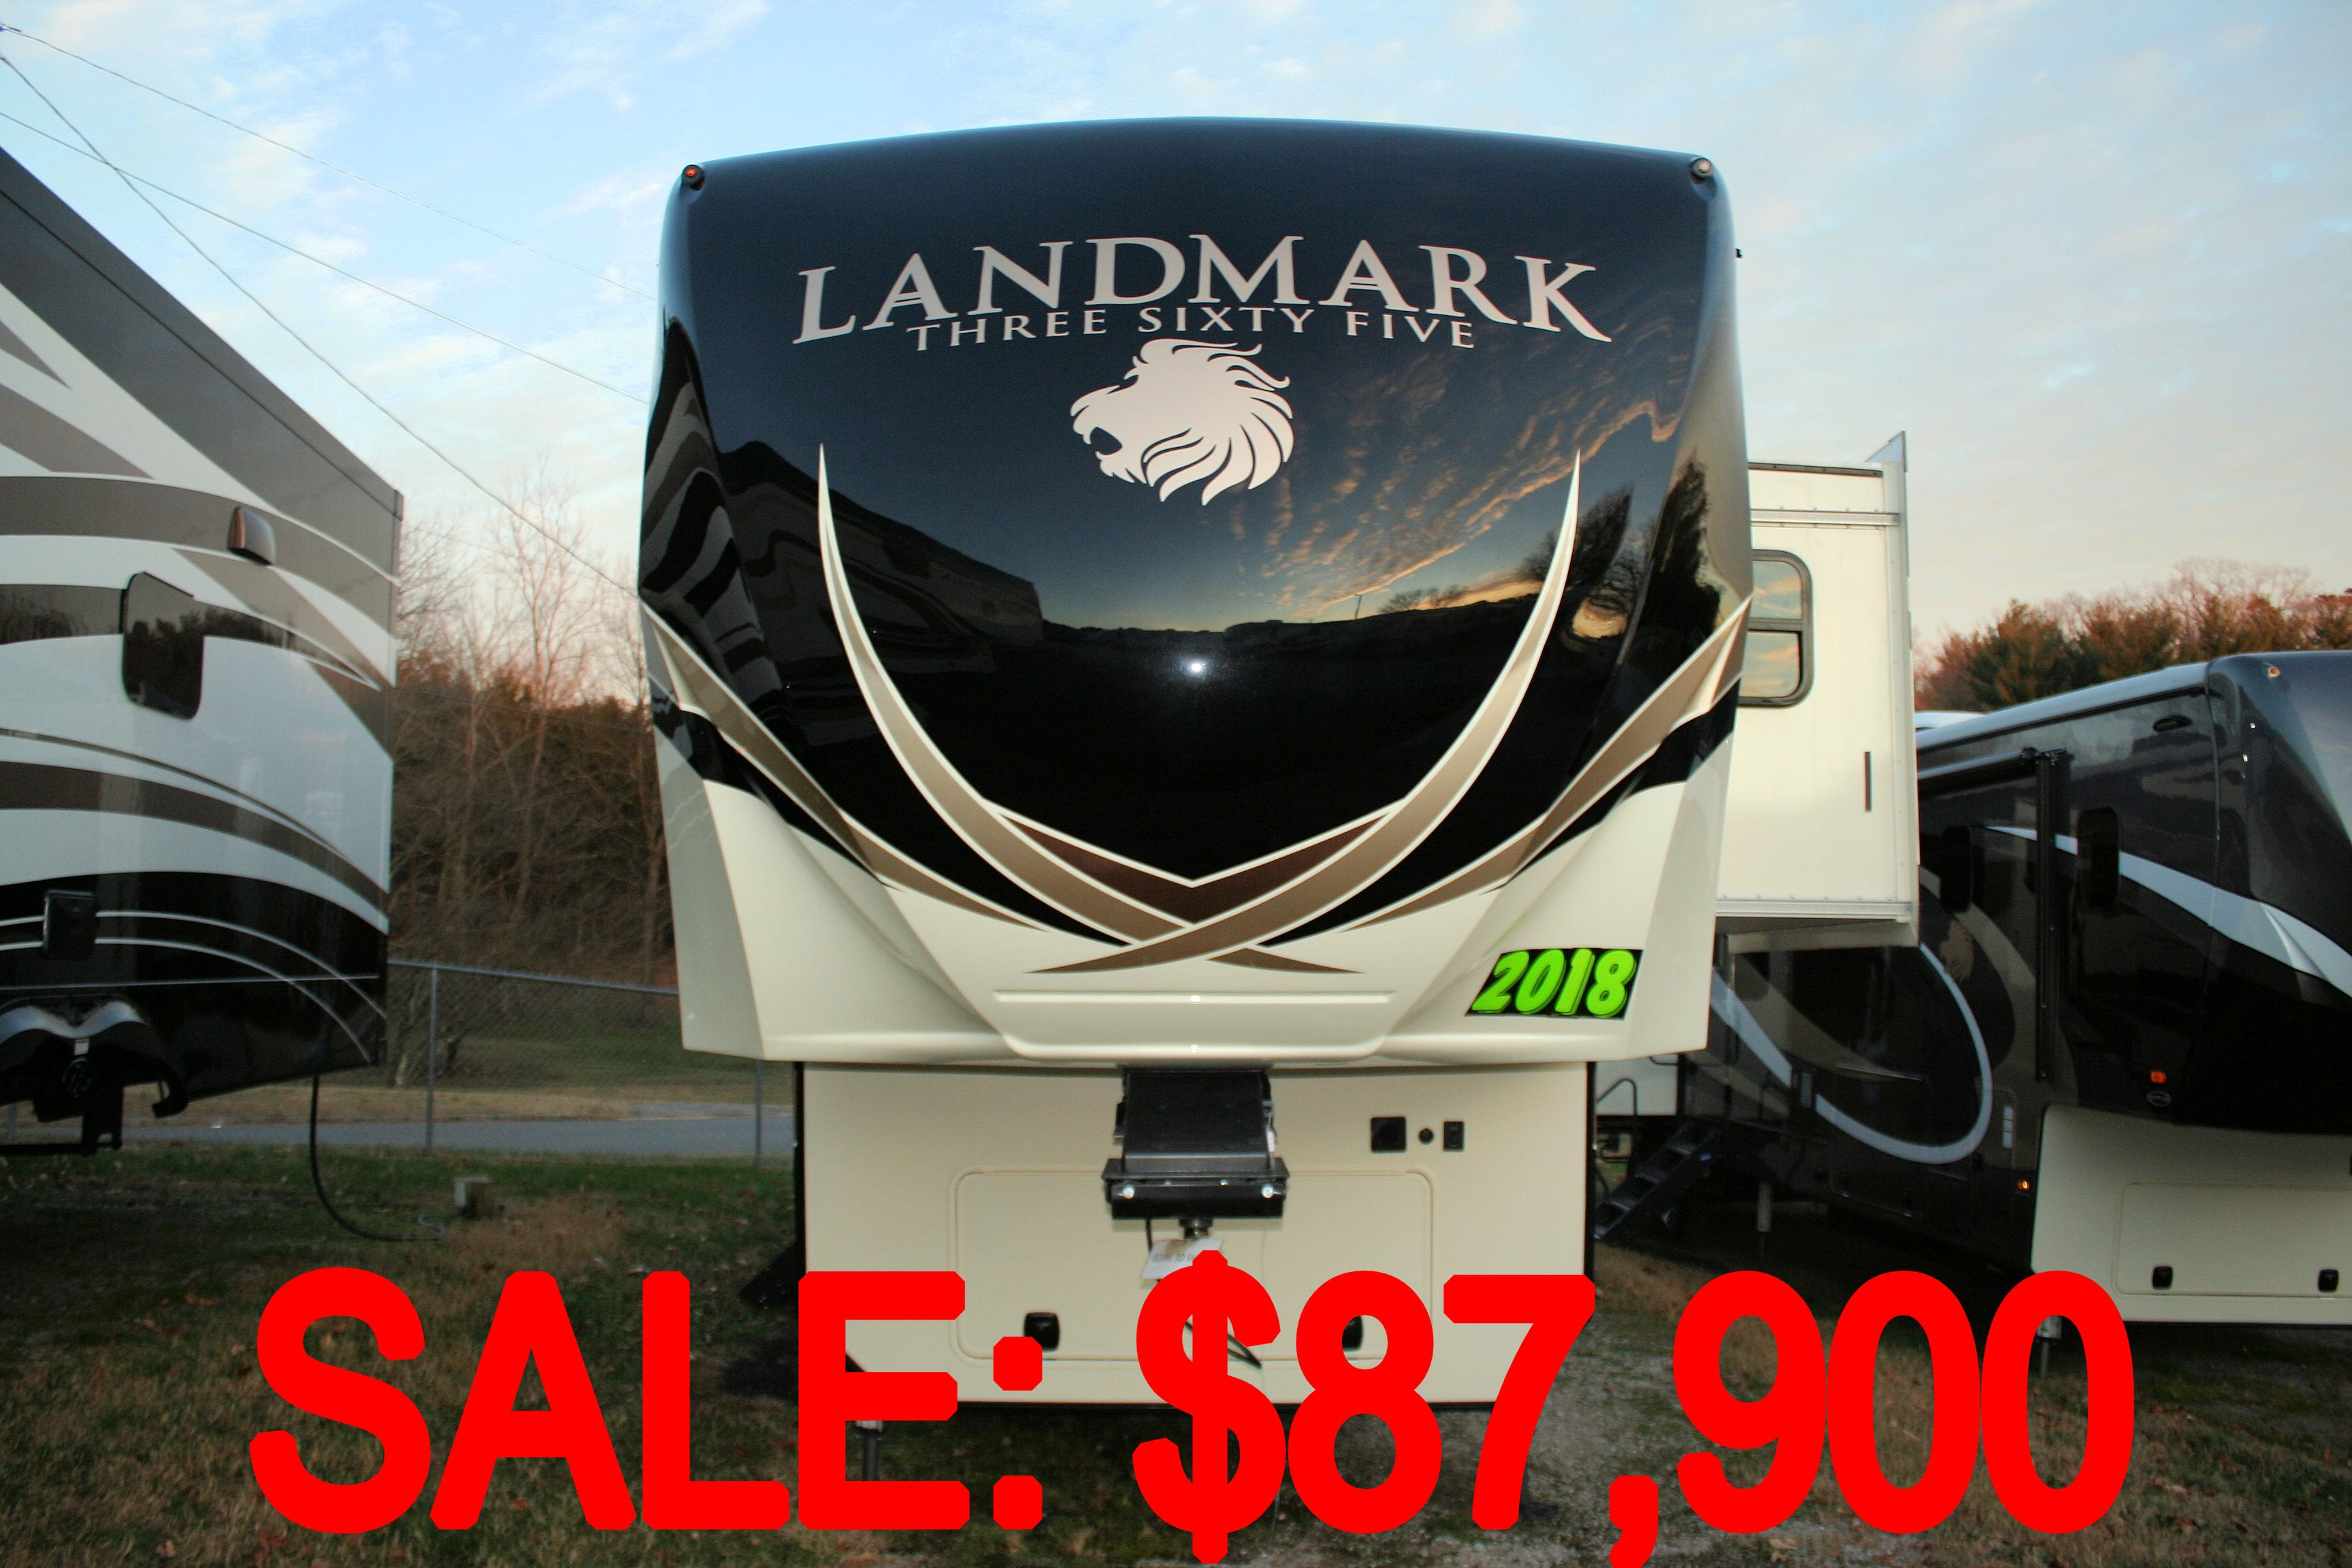 Drv Heartland Fifth Wheel Rvs Dealer In Knoxville Tennessee